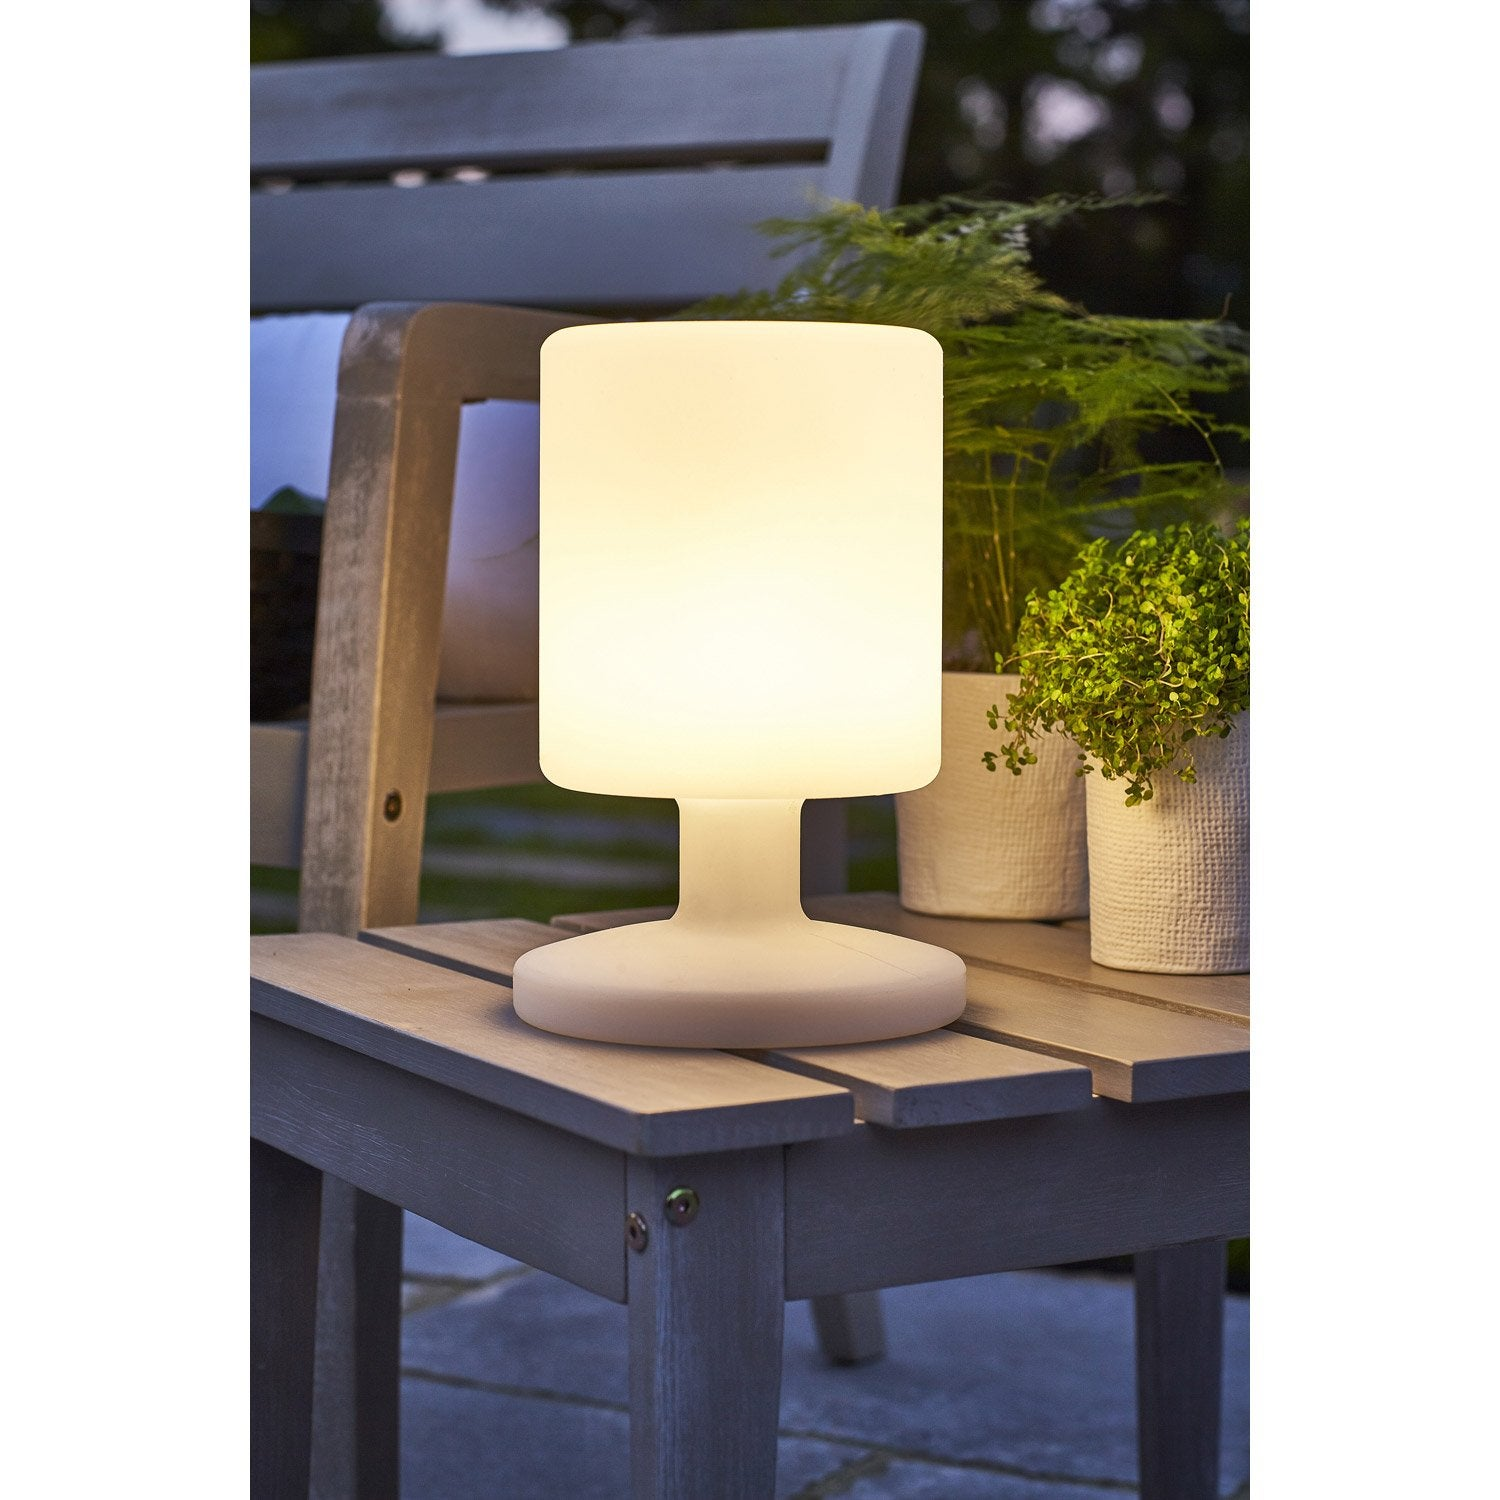 lampe de table ext rieure led int gr e 5 w 130 lm blanc leroy merlin. Black Bedroom Furniture Sets. Home Design Ideas